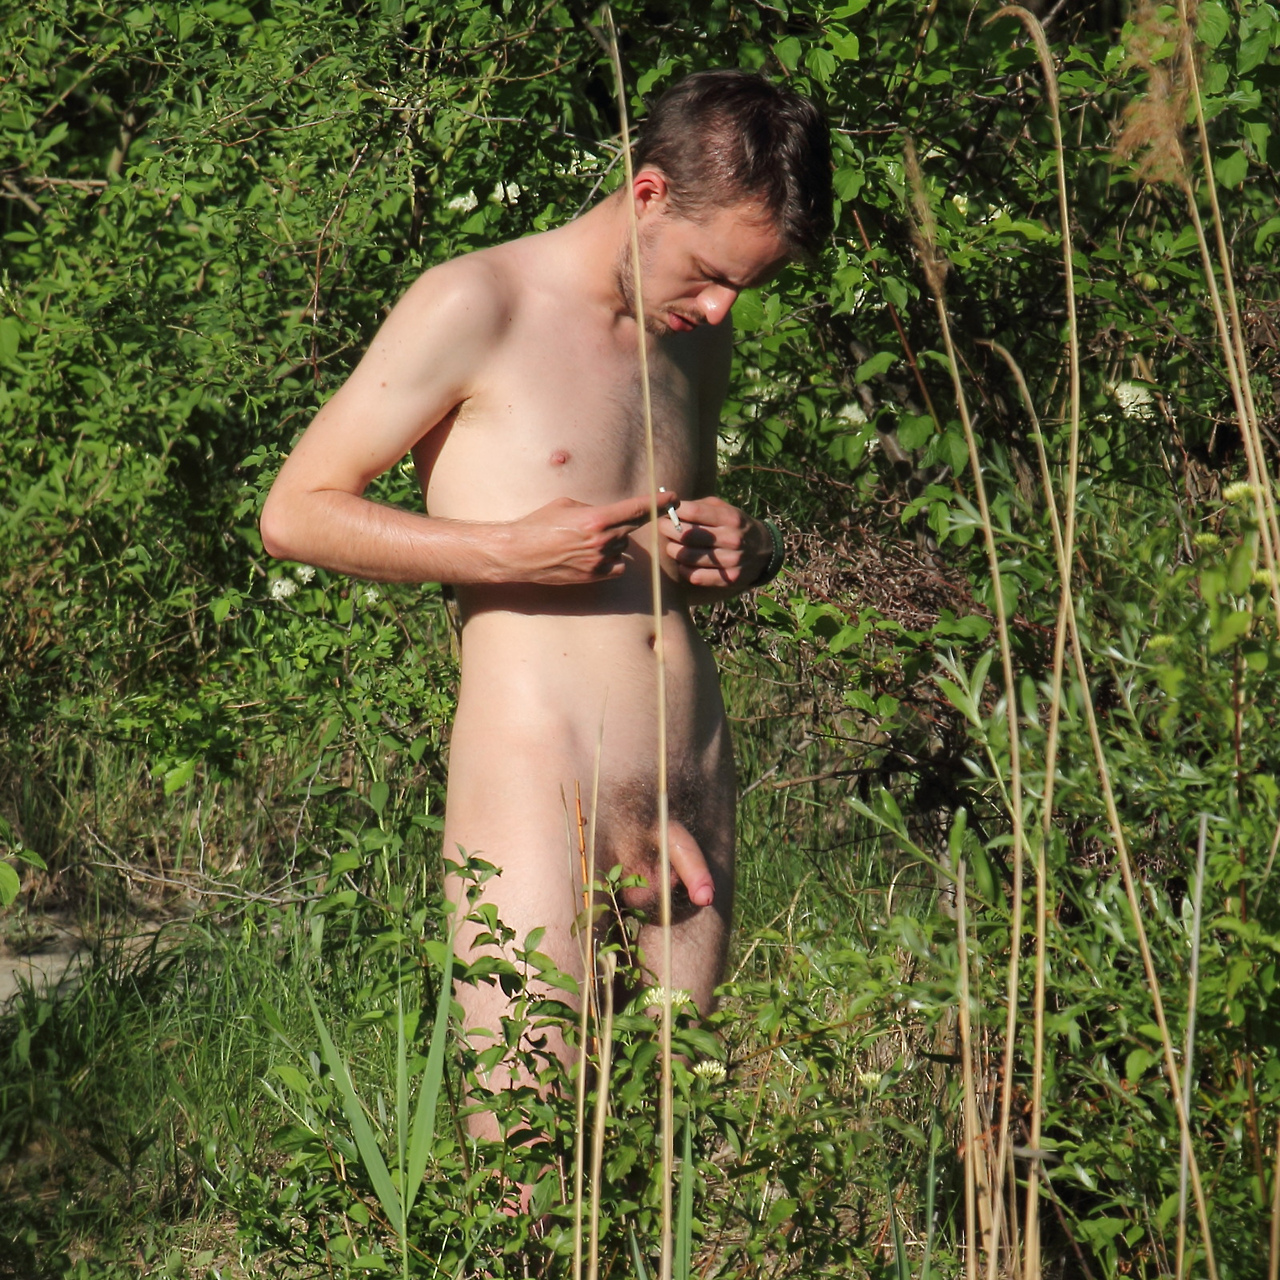 There camping nudist porno video